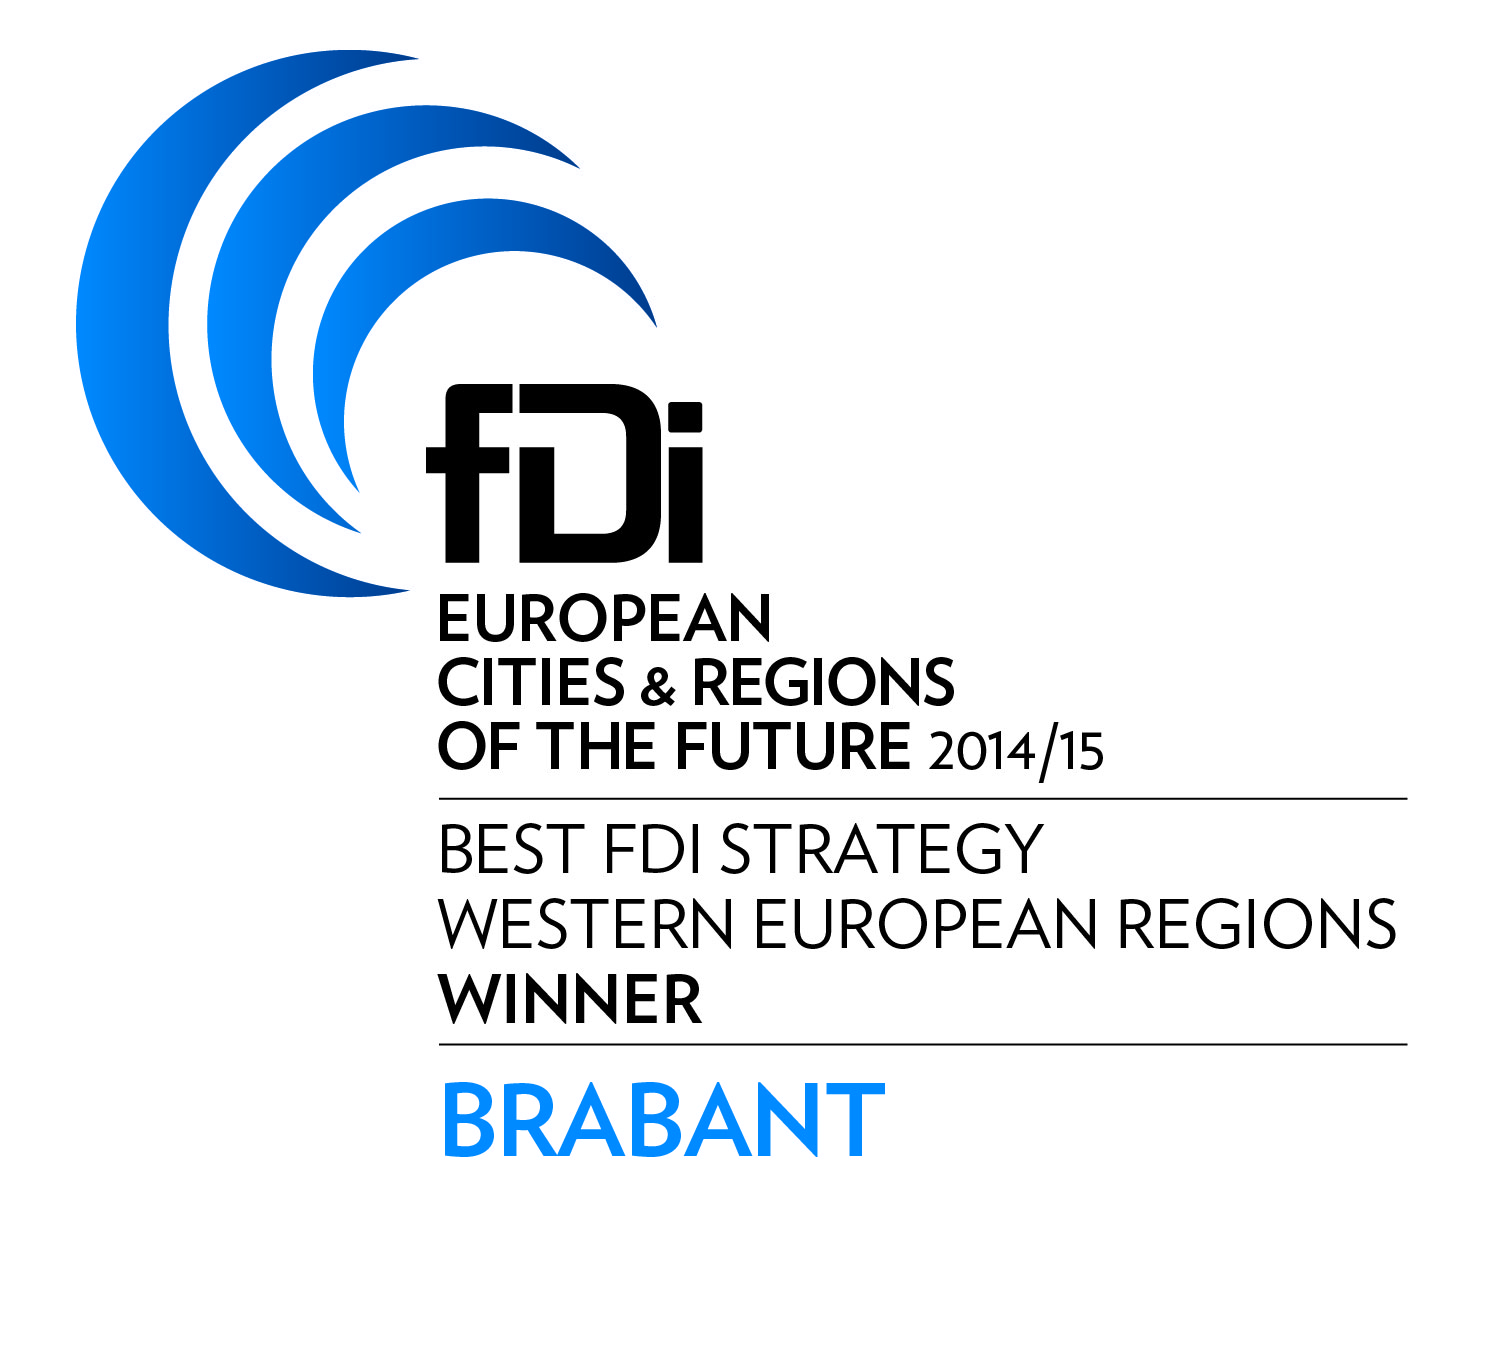 Brabant phenomenal scores in Financial Times ranking